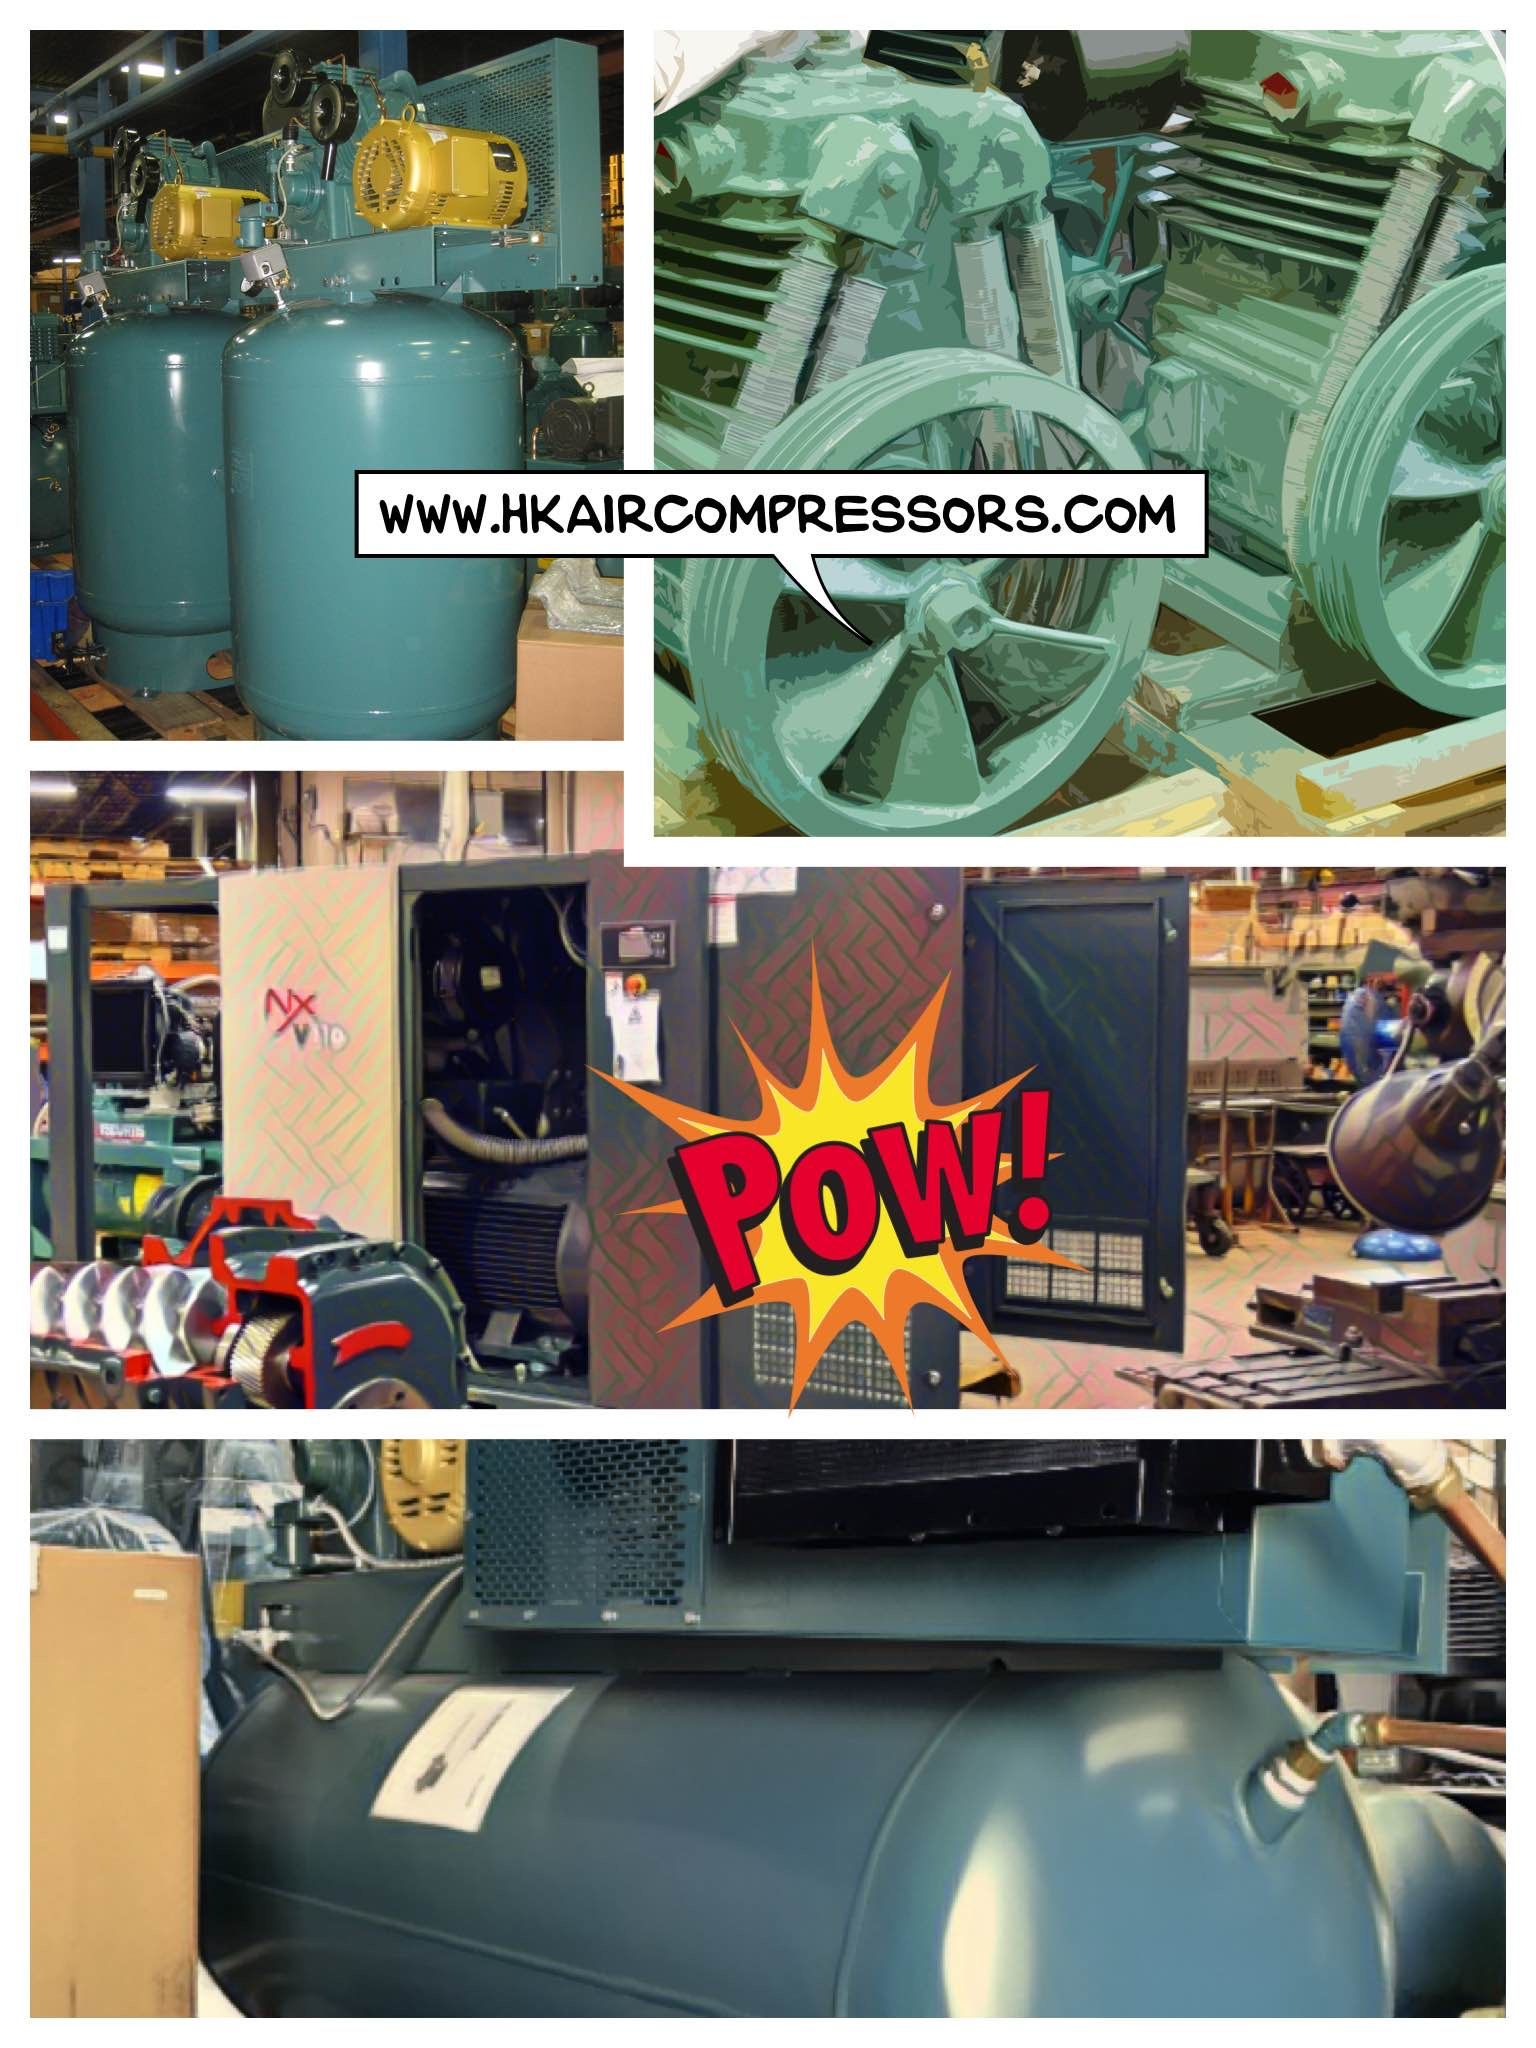 FSCURTIS rotary screw compressor. Future of rotary screws